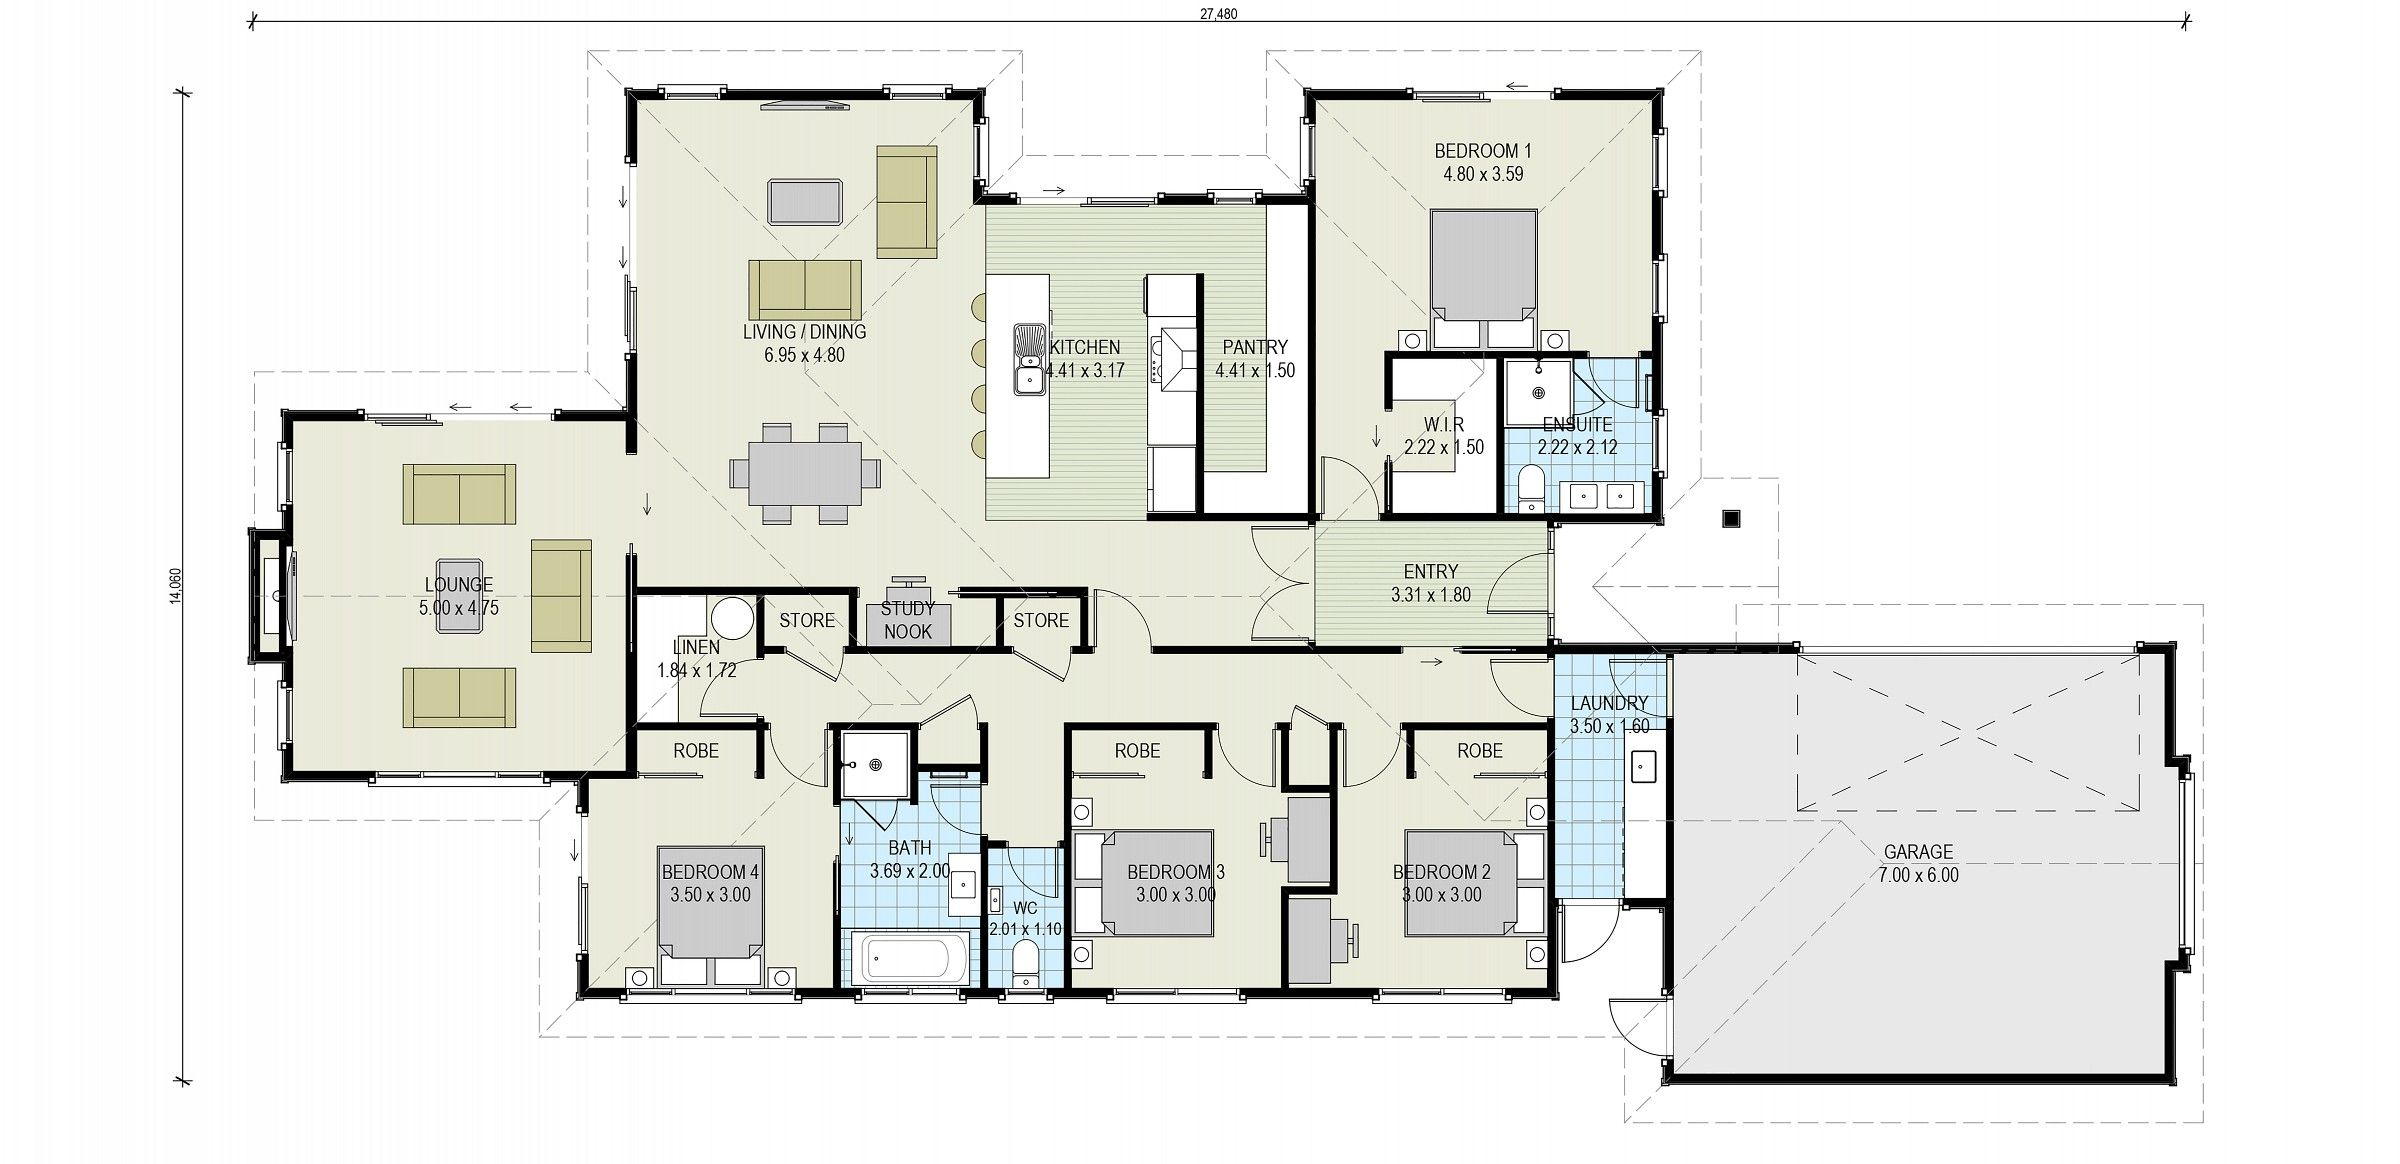 701821e30d560894d68bb0289031429f Top Result 50 New 7 Bedroom House Plans Gallery 2017 Hgd6